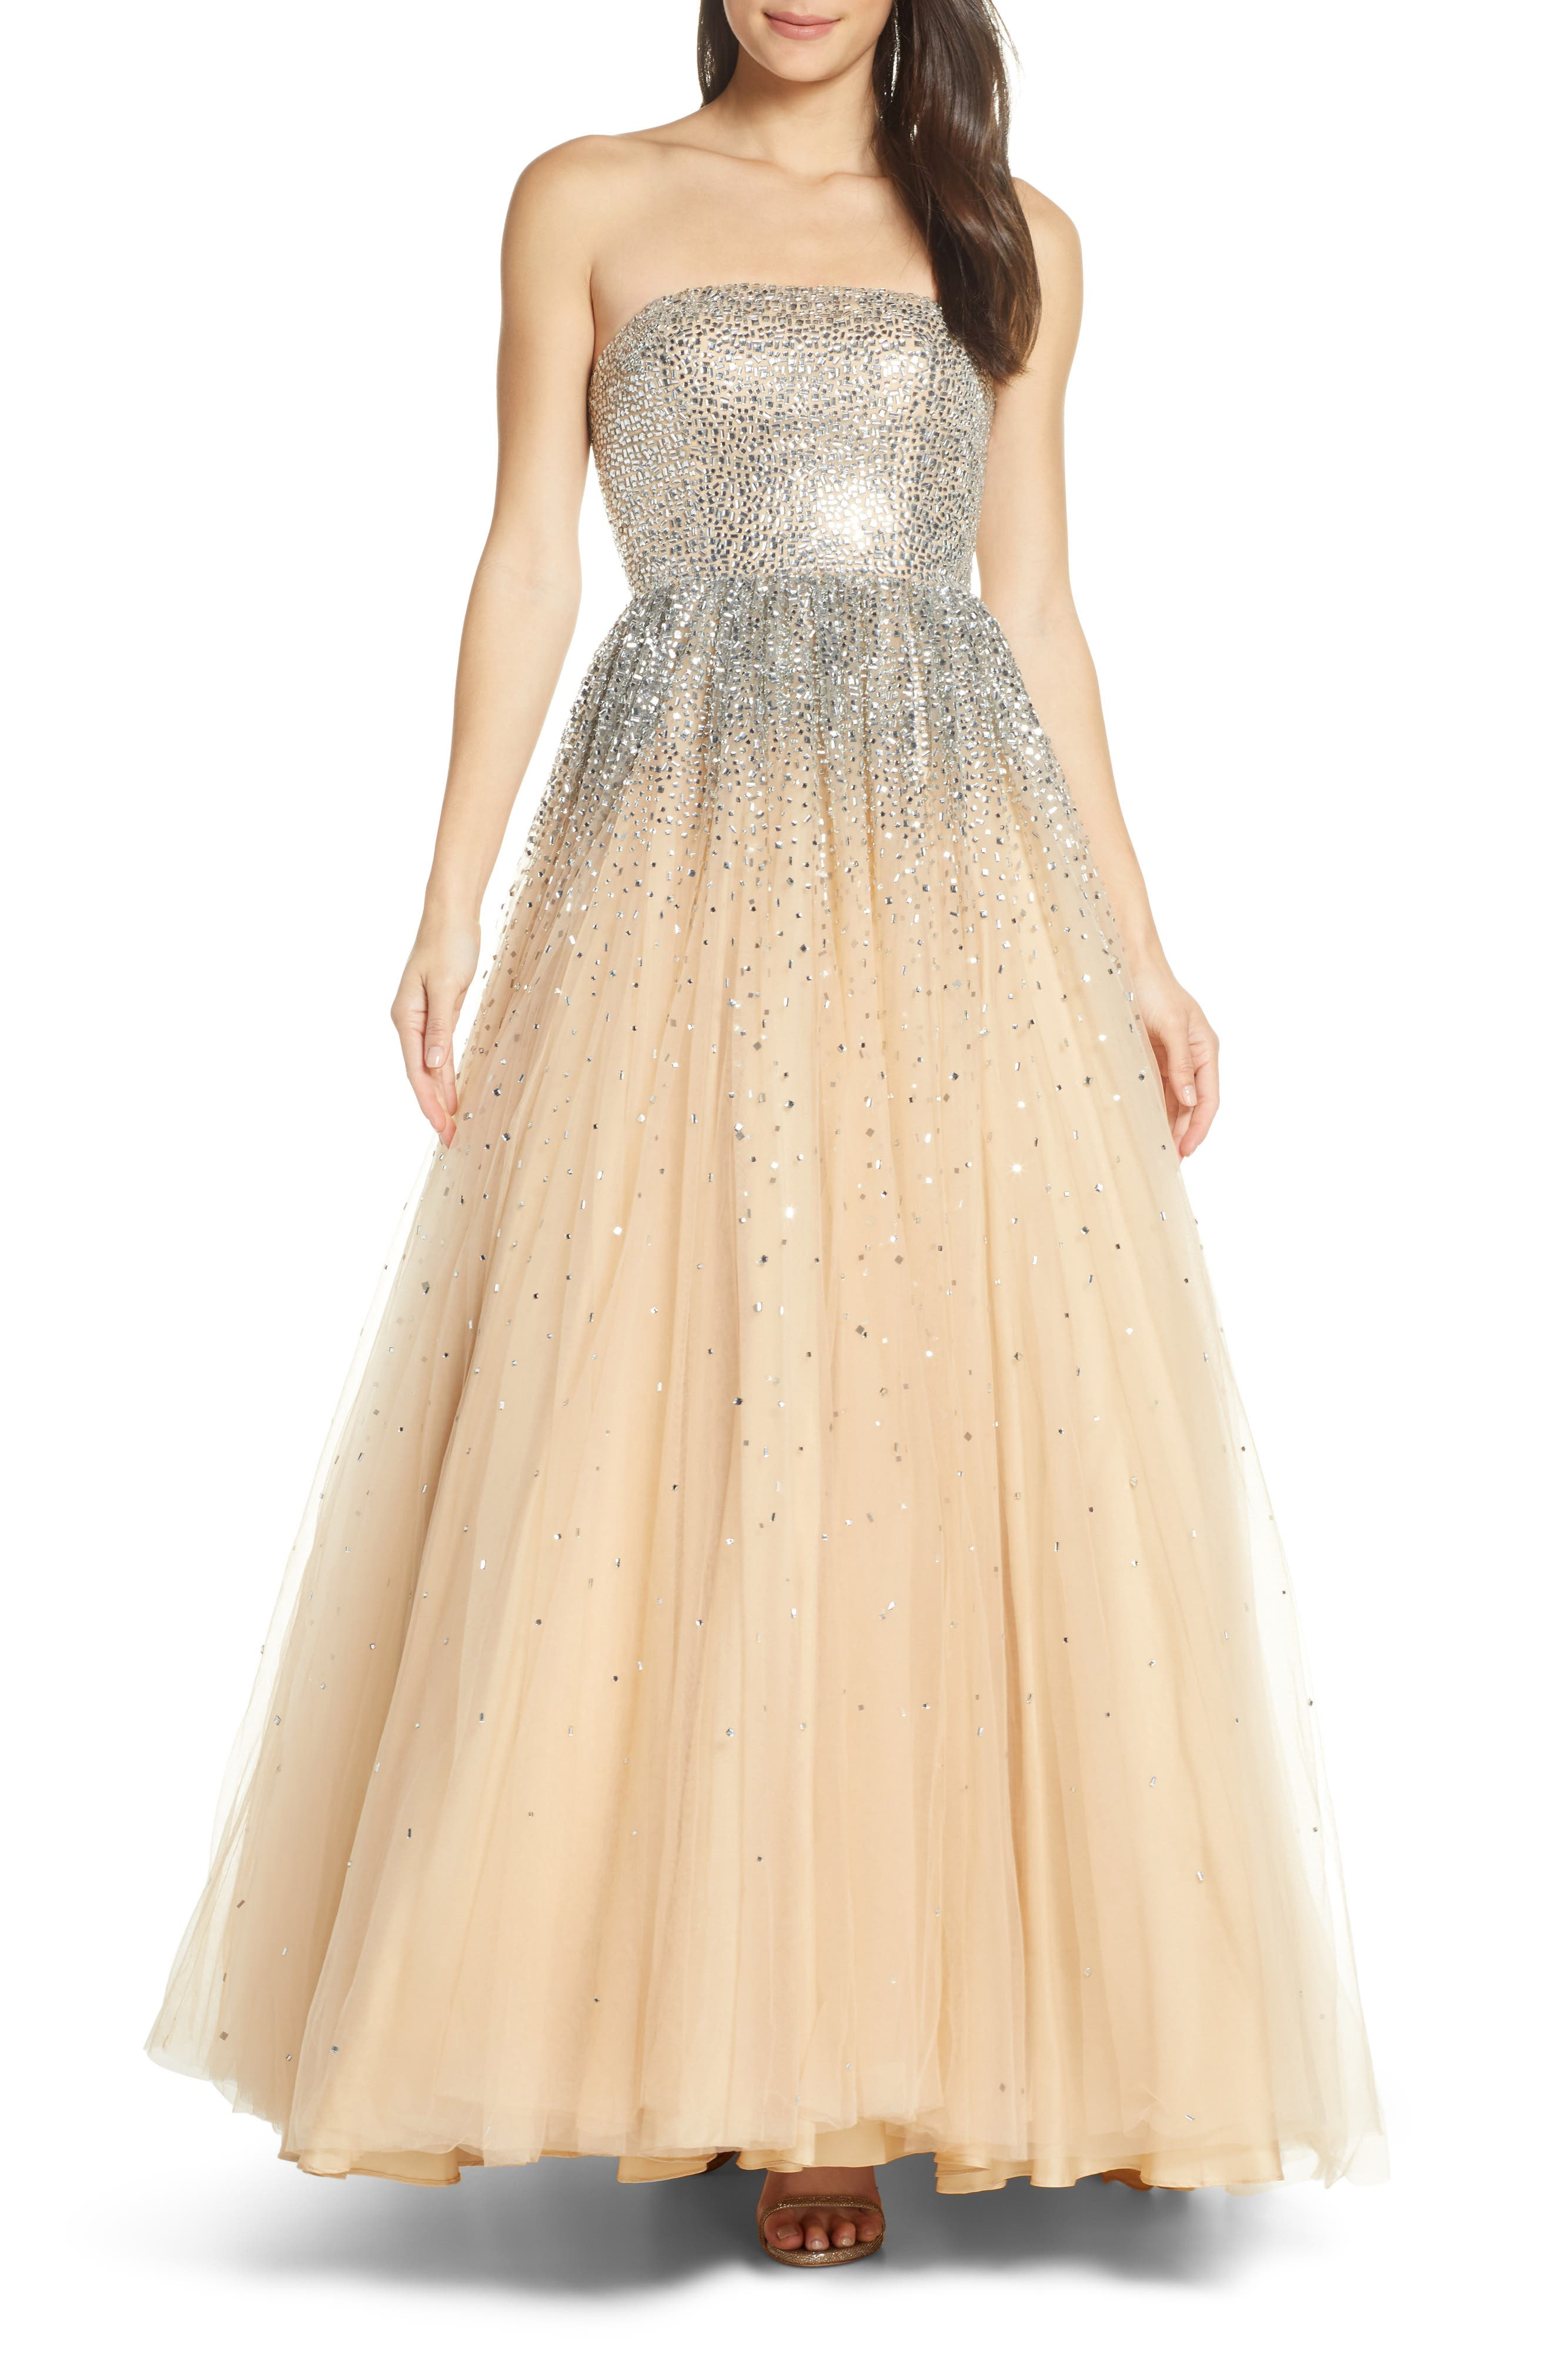 1950s Prom Dresses, Formal Dresses and Party Dresses Womens MAC Duggal Bejeweled Strapless Tulle Evening Dress $798.00 AT vintagedancer.com